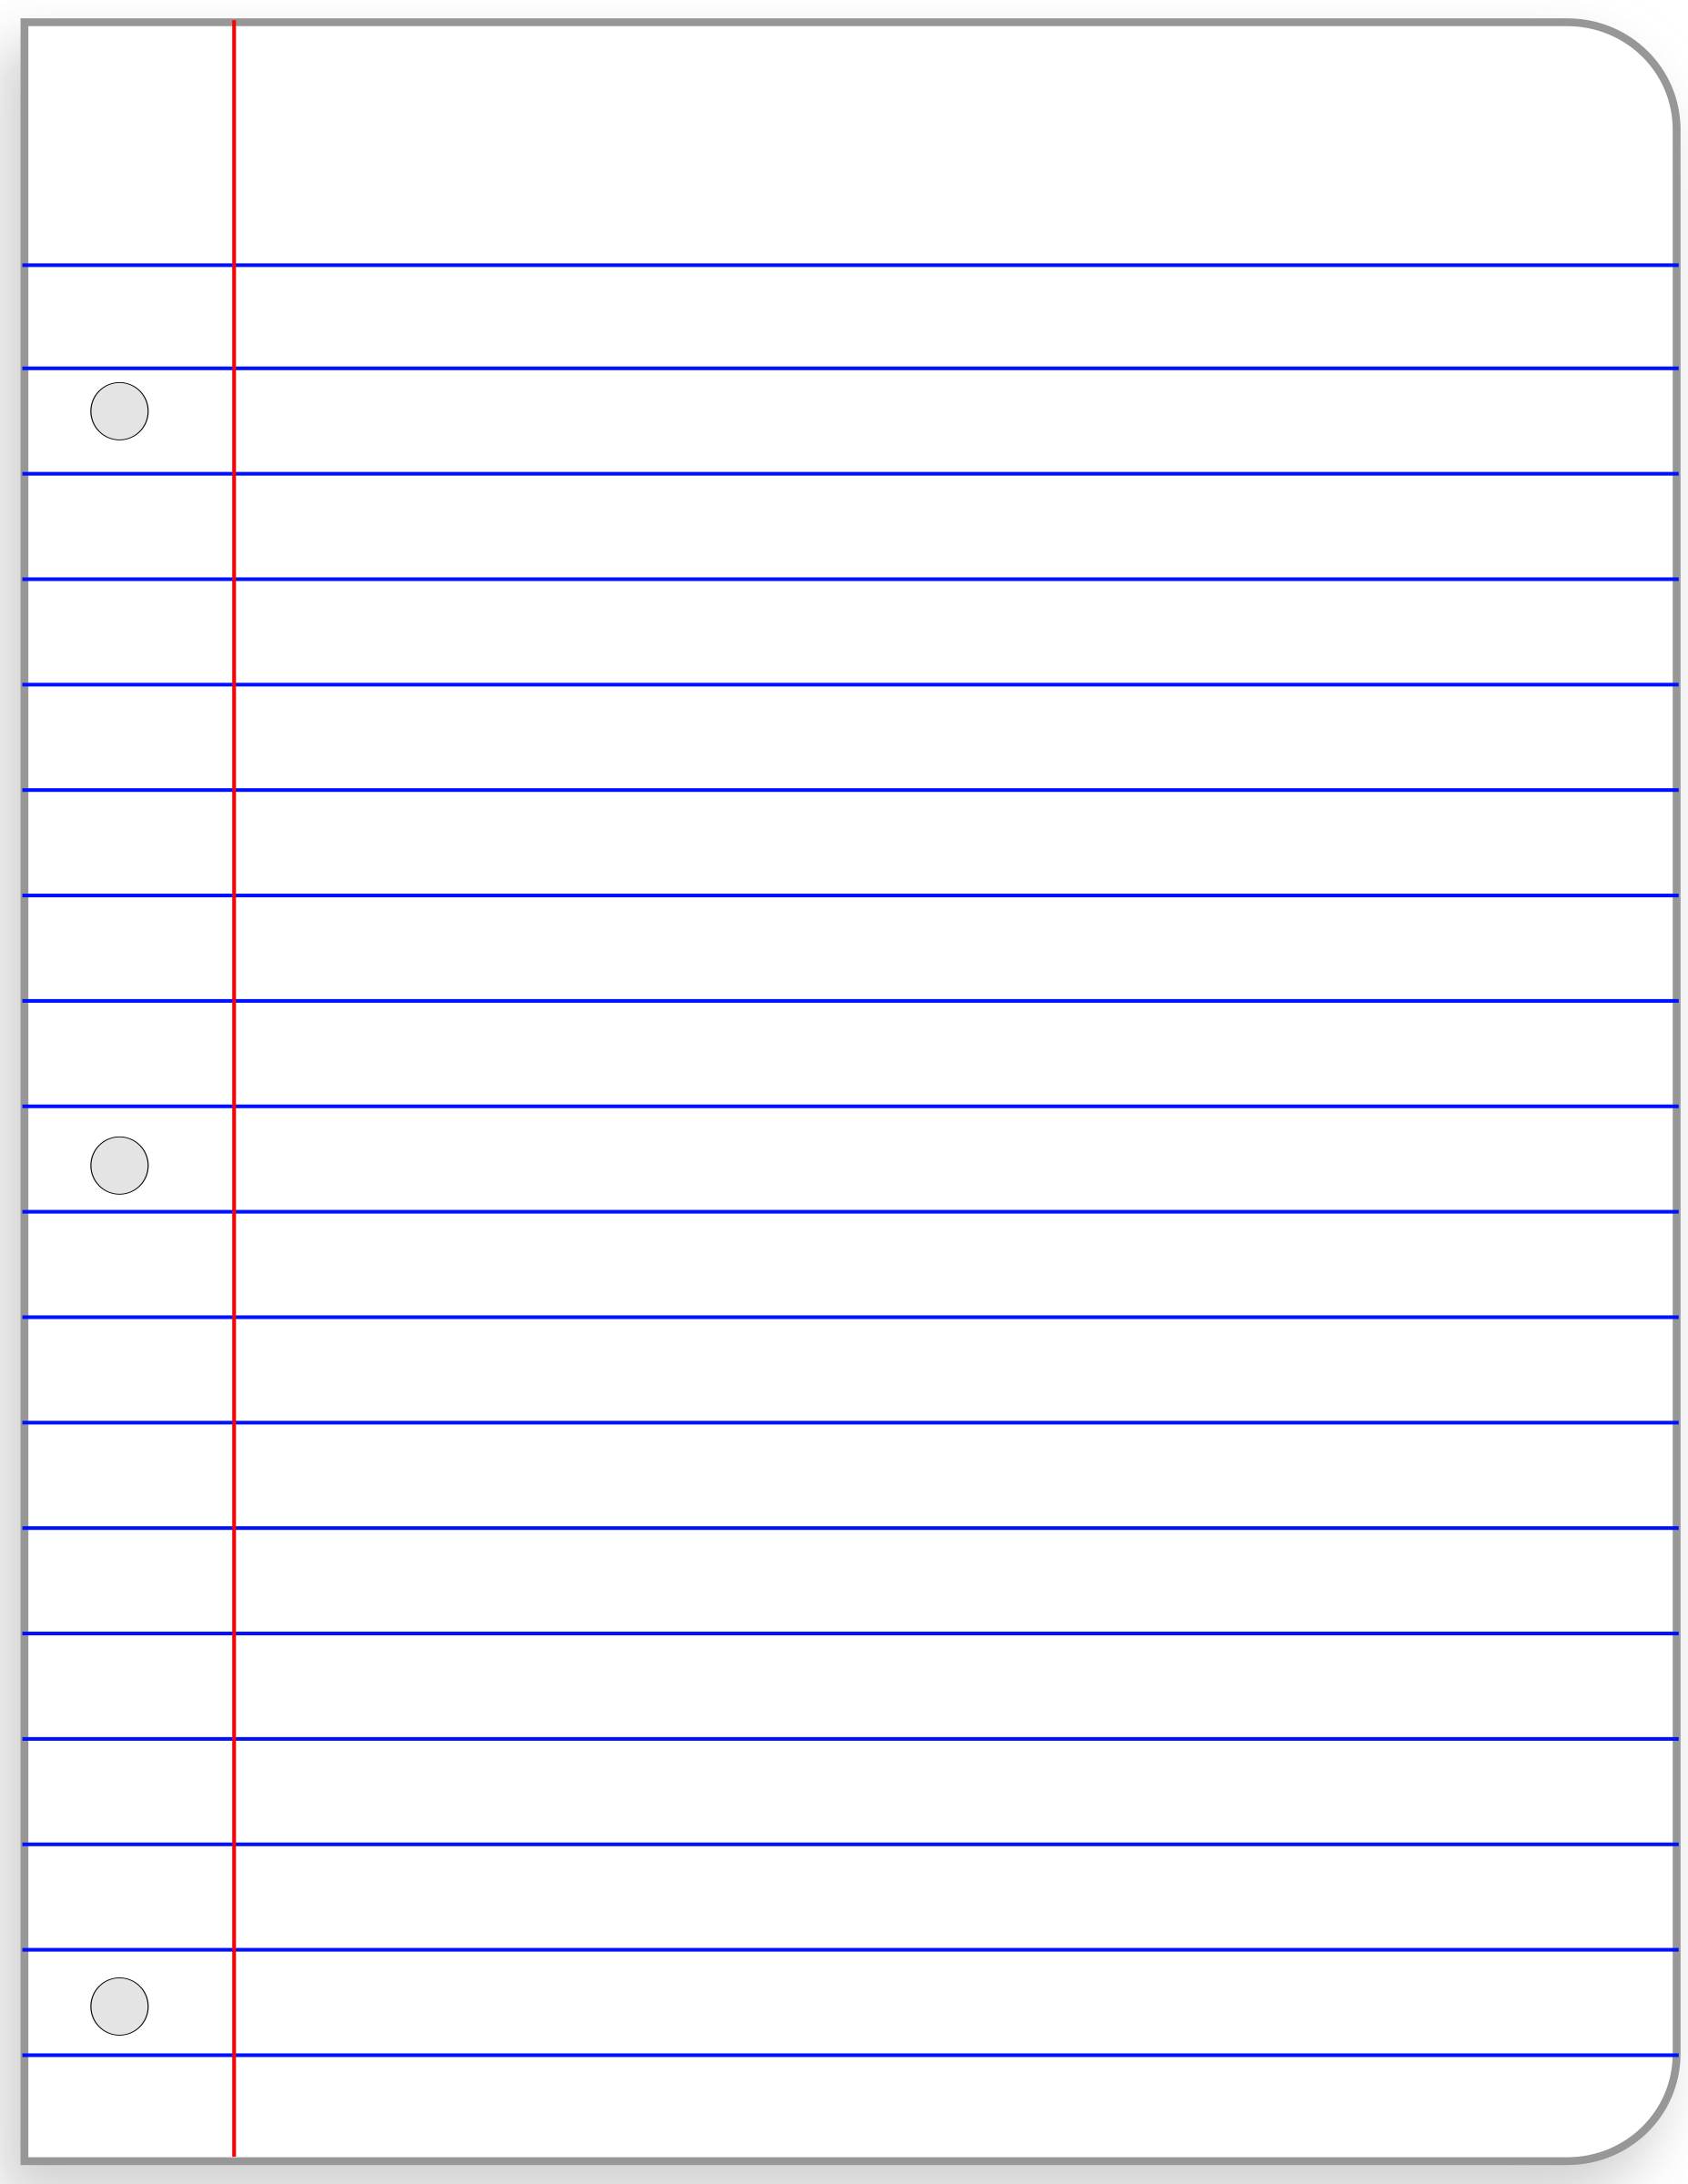 Paper clipart college ruled Paper paper ruled college Writing